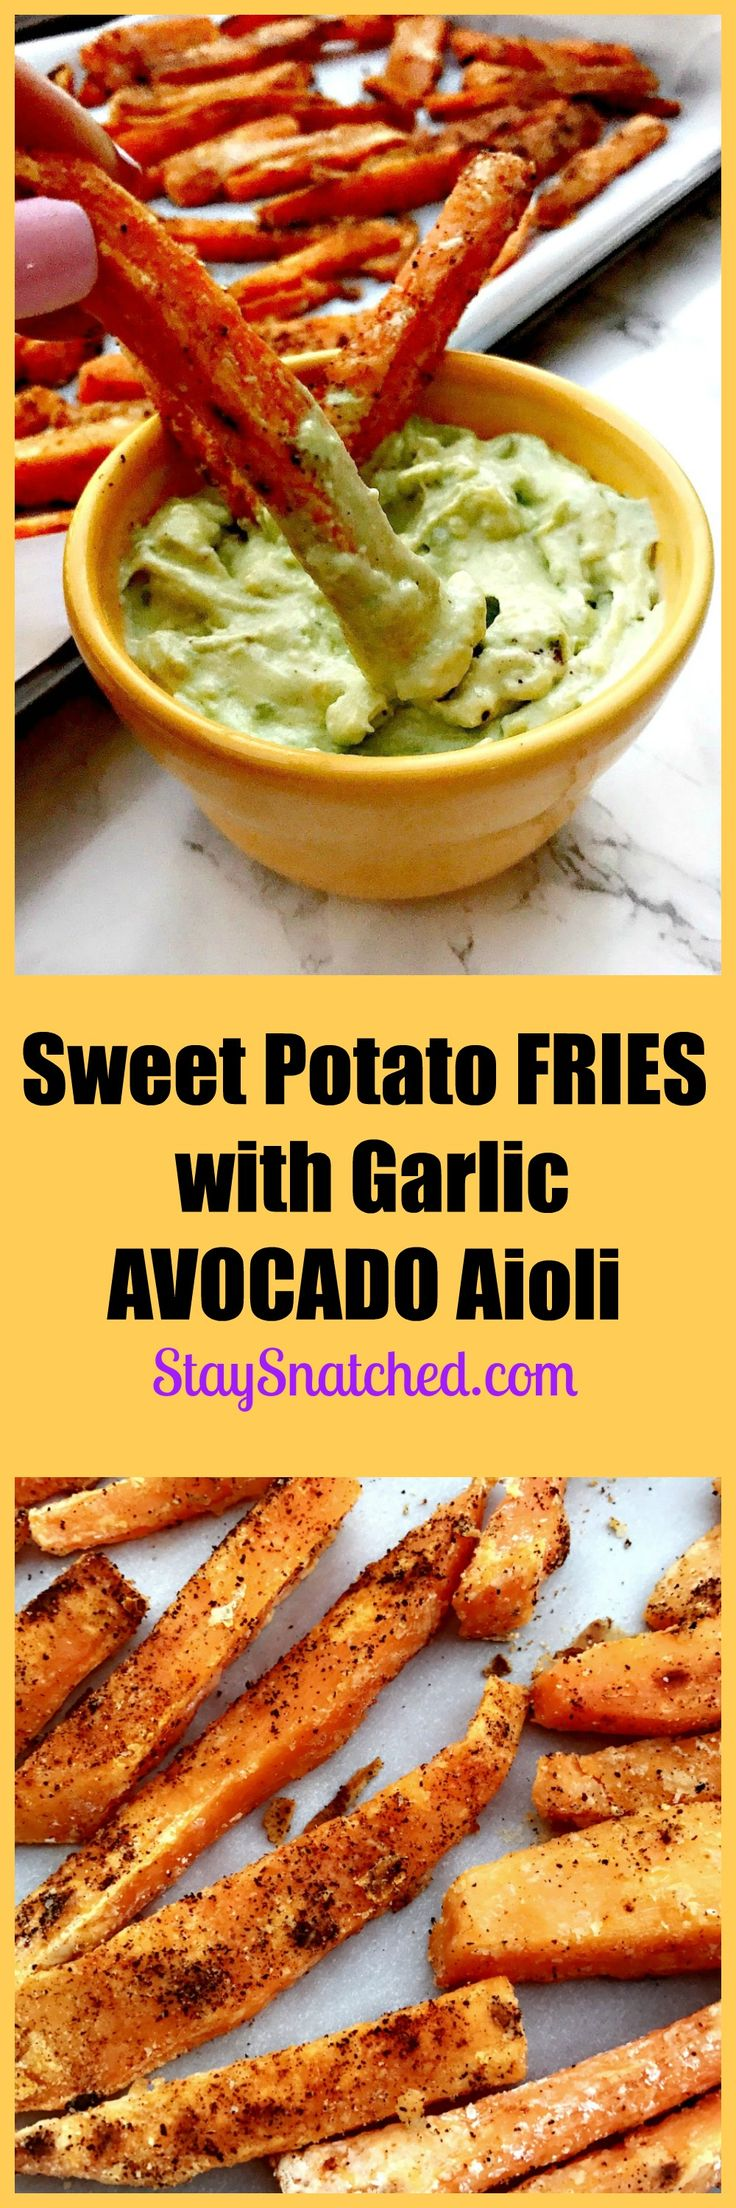 savory, crunchy sweet potato fries with creamy avocado garlic aioli sauce